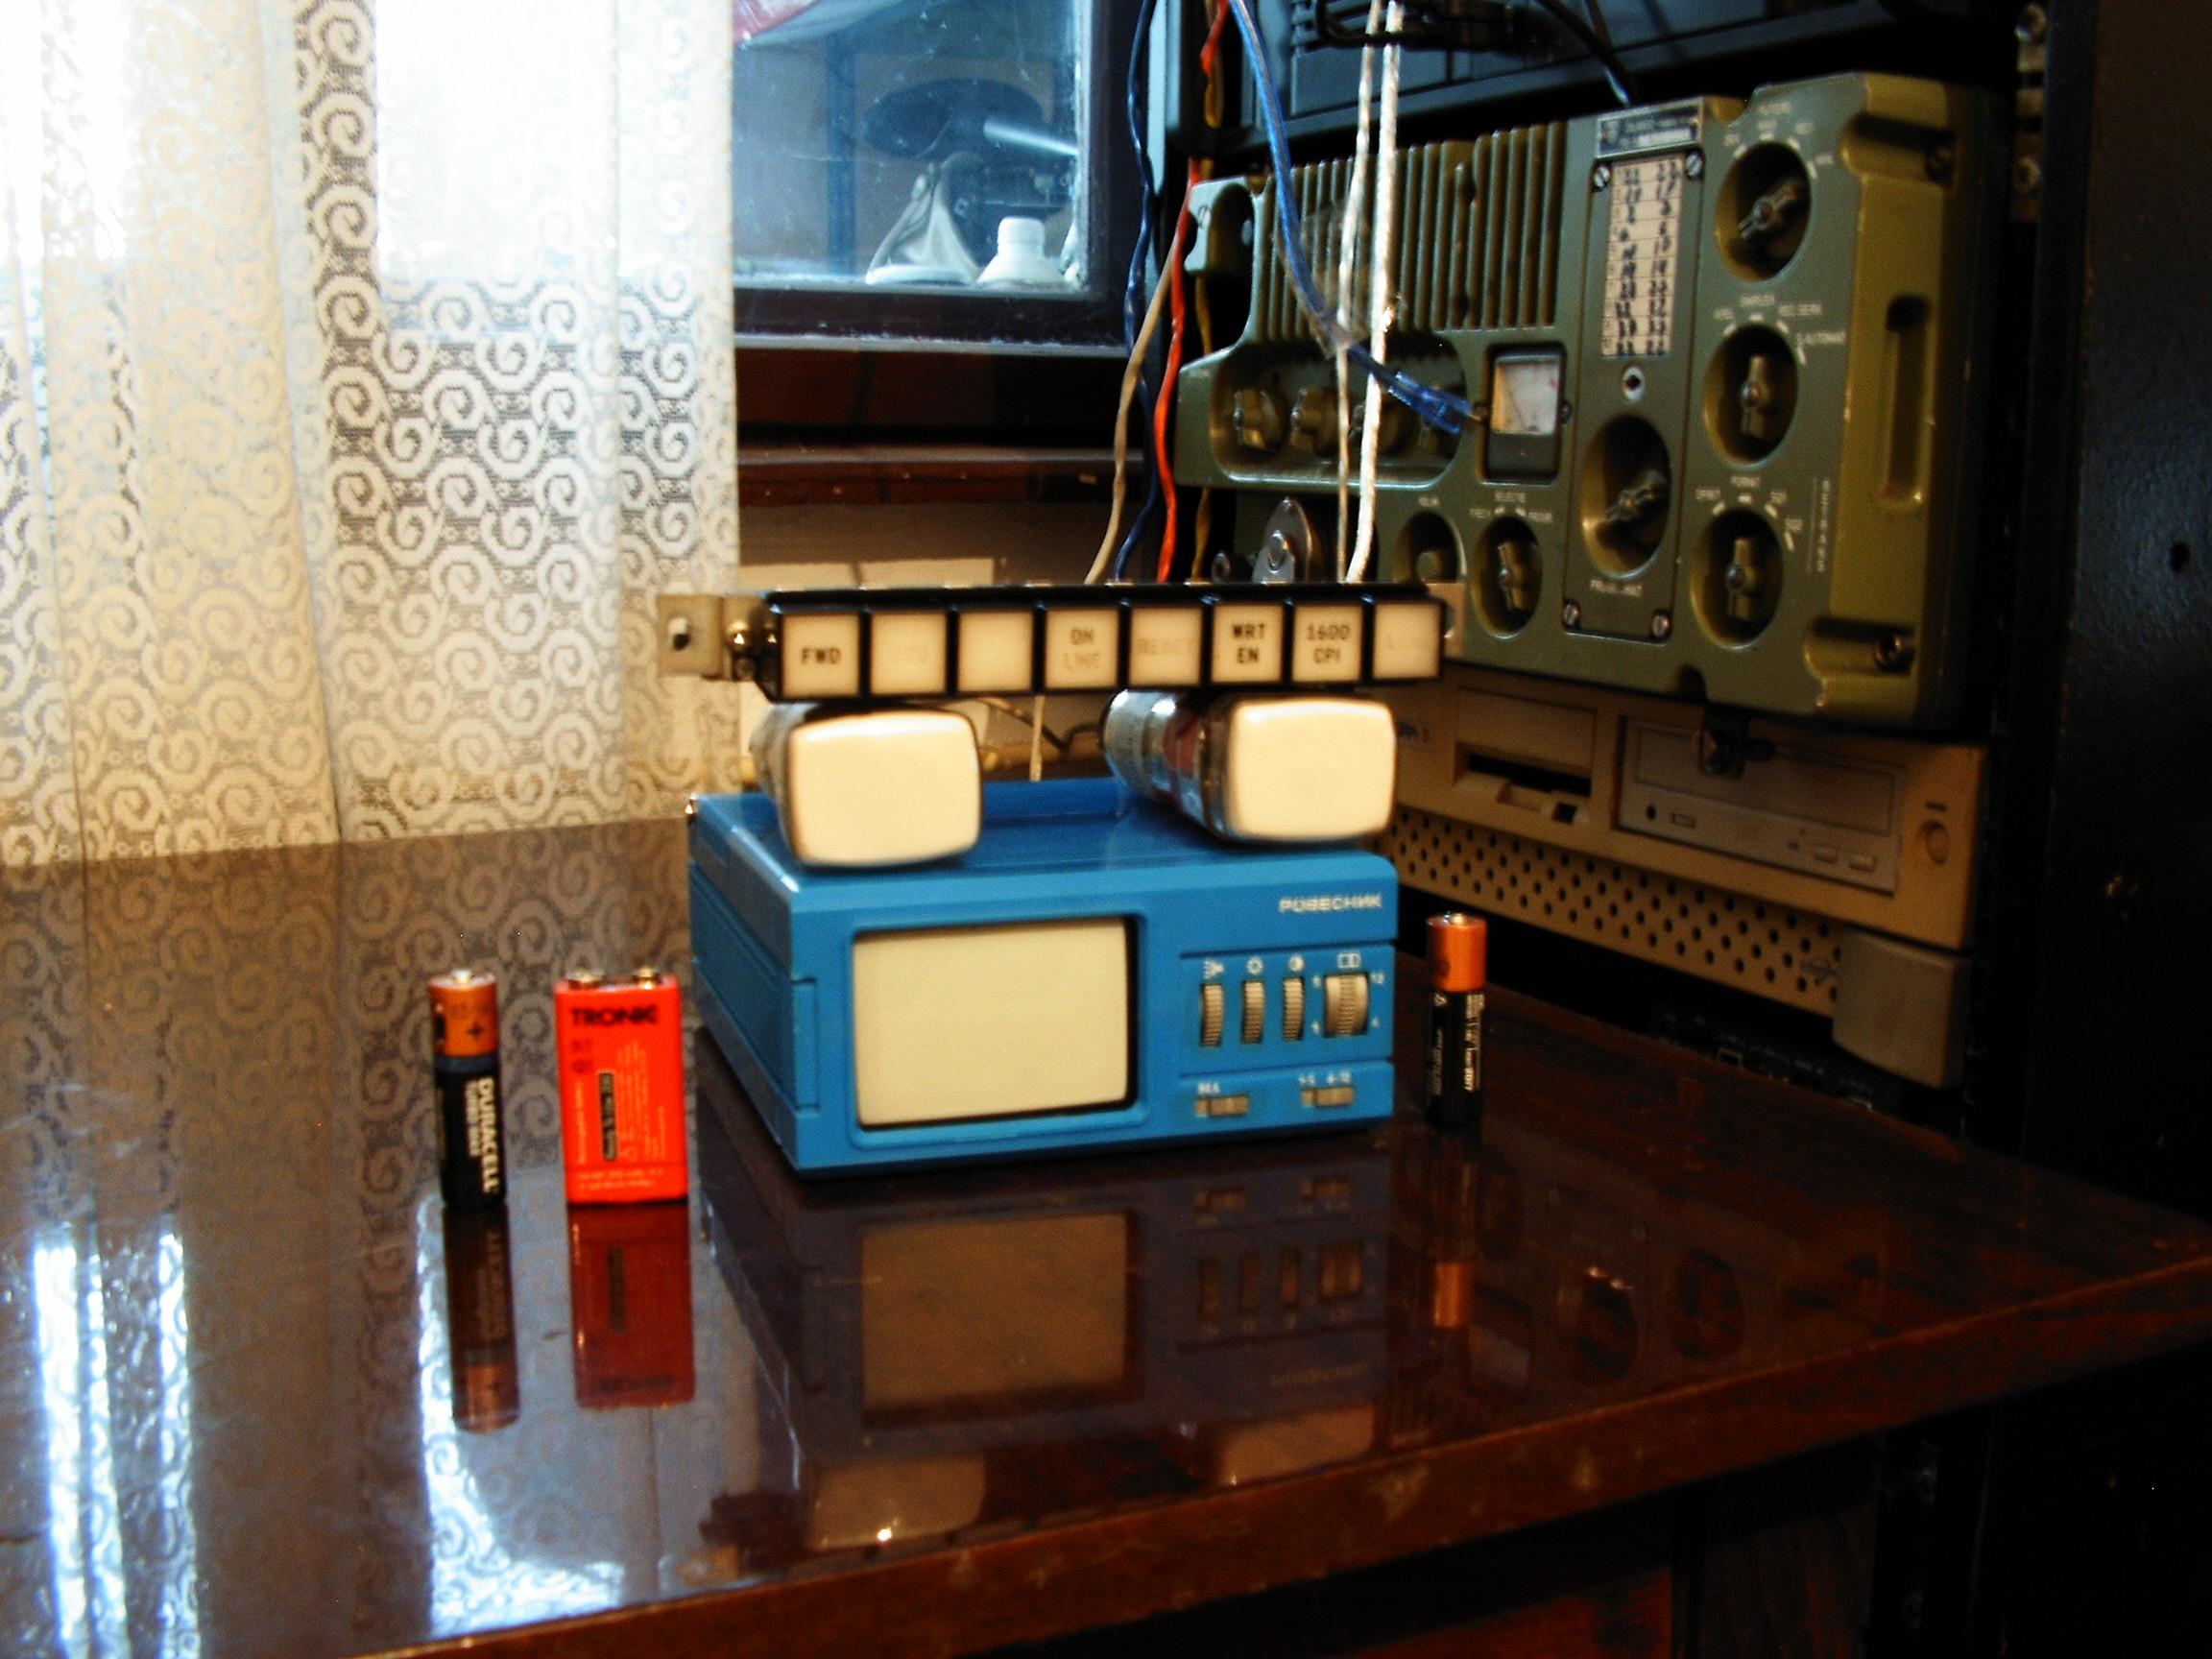 Project Retro Futuristic Automobile Control Panel Rotative Speed Regulator Borer Driller Controller These Are The Two D5 100w 2 Oscilloscope Crts Which Supposed To Stay In Right Side Of Color Display Also Rovesnik Russian Tv Set